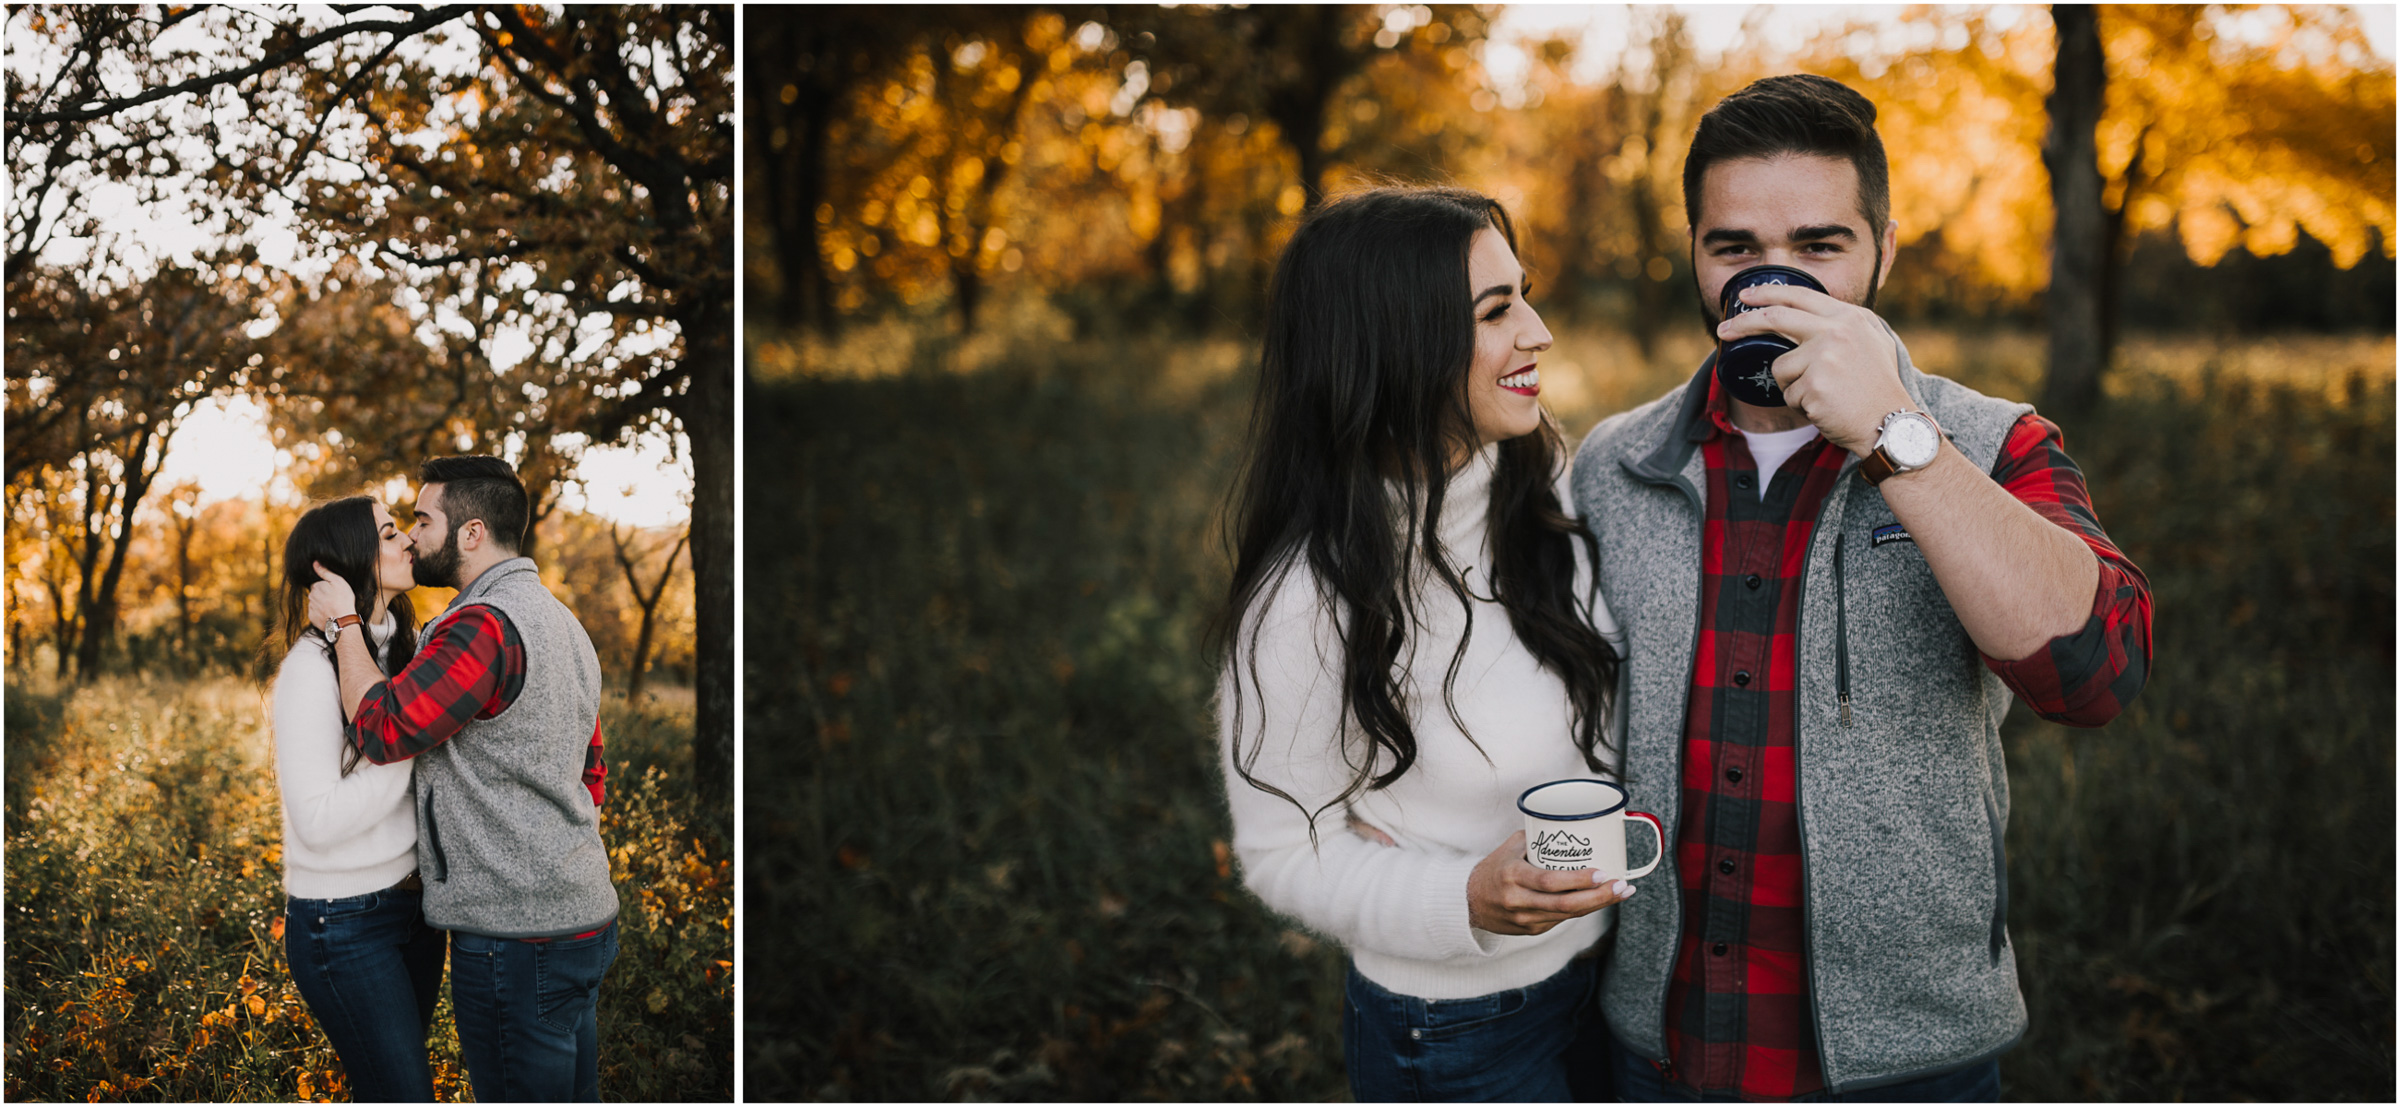 alyssa barletter photography shawnee mission park fall engagement photographer a girl her life blogger sunset photos-15.jpg